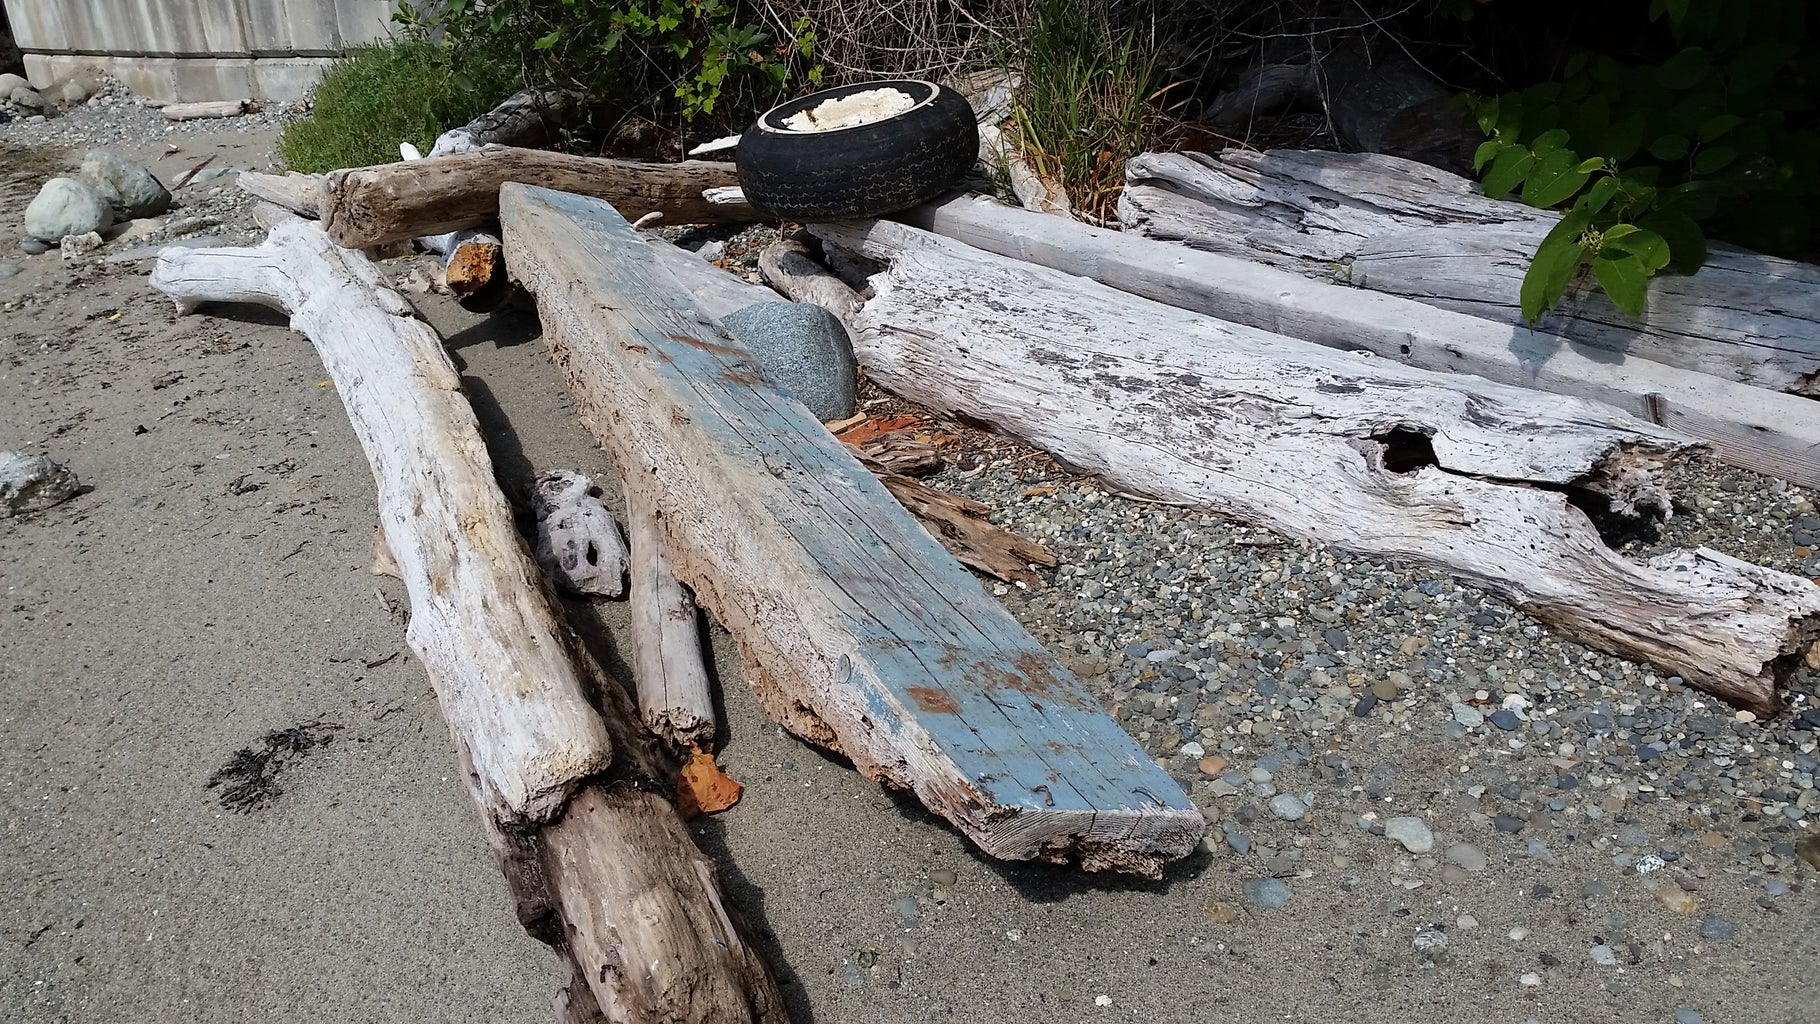 Sourcing Appropriate Driftwood